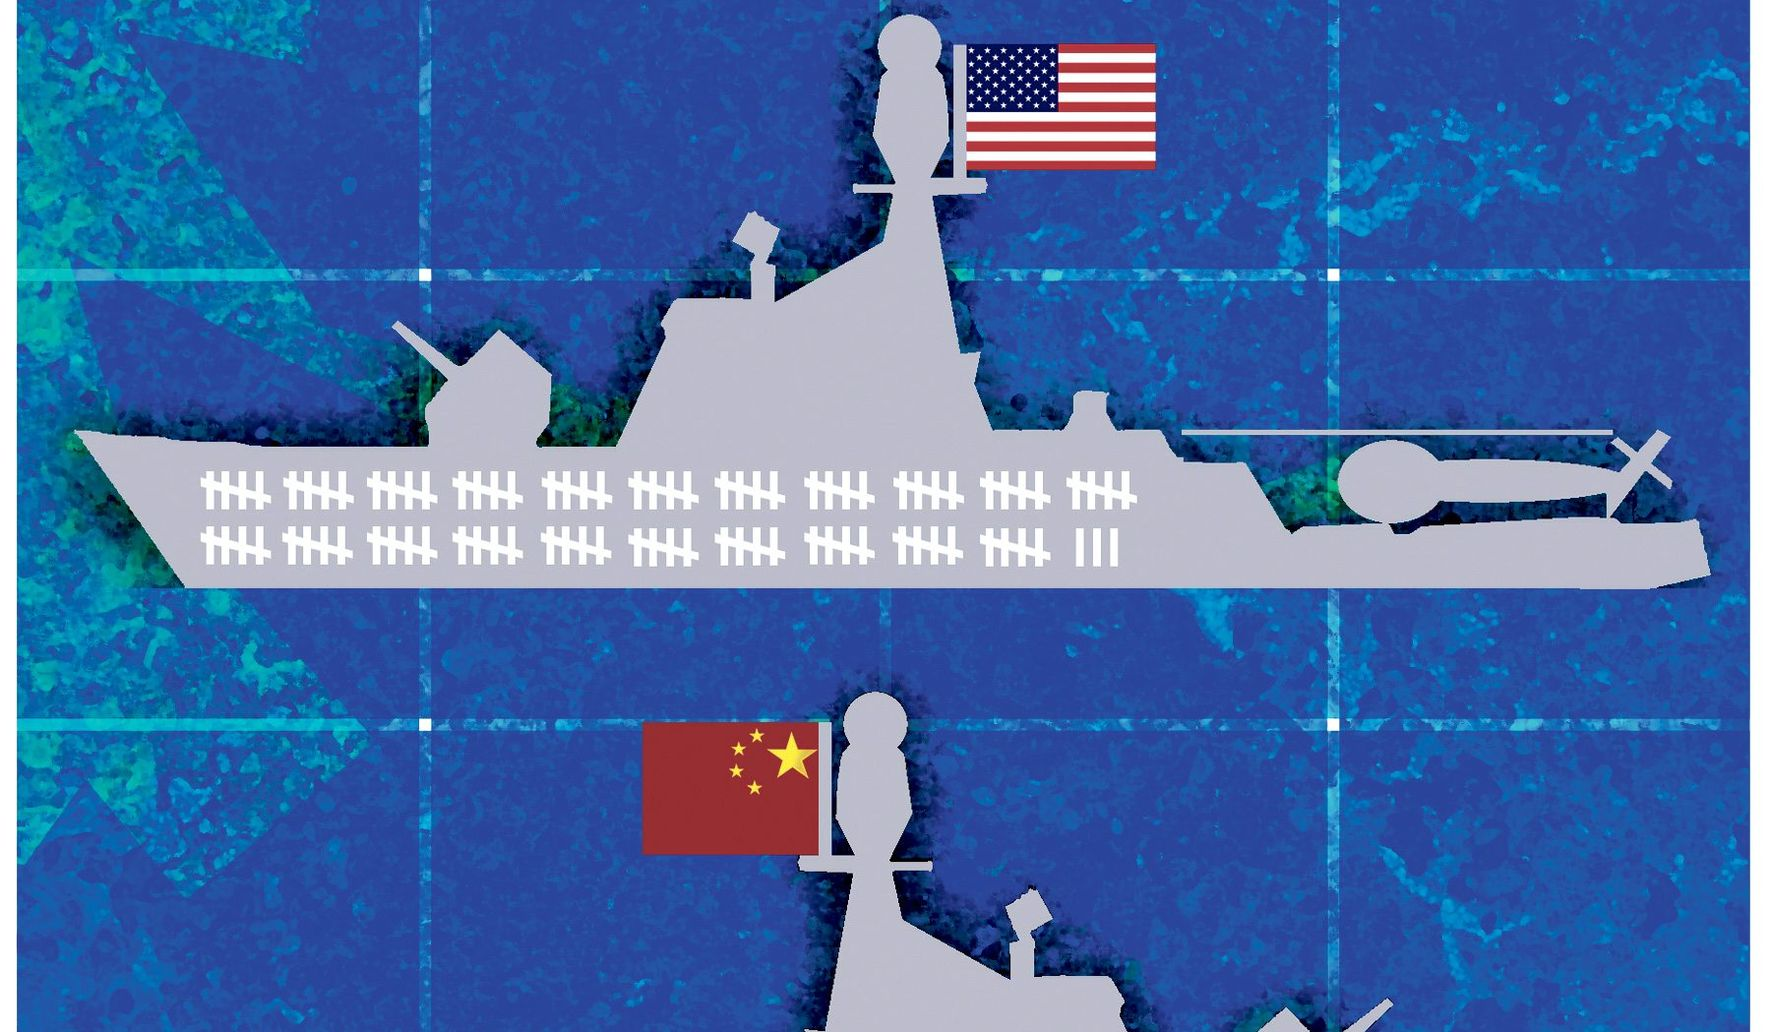 In a war against China, numbers tell only part of the story